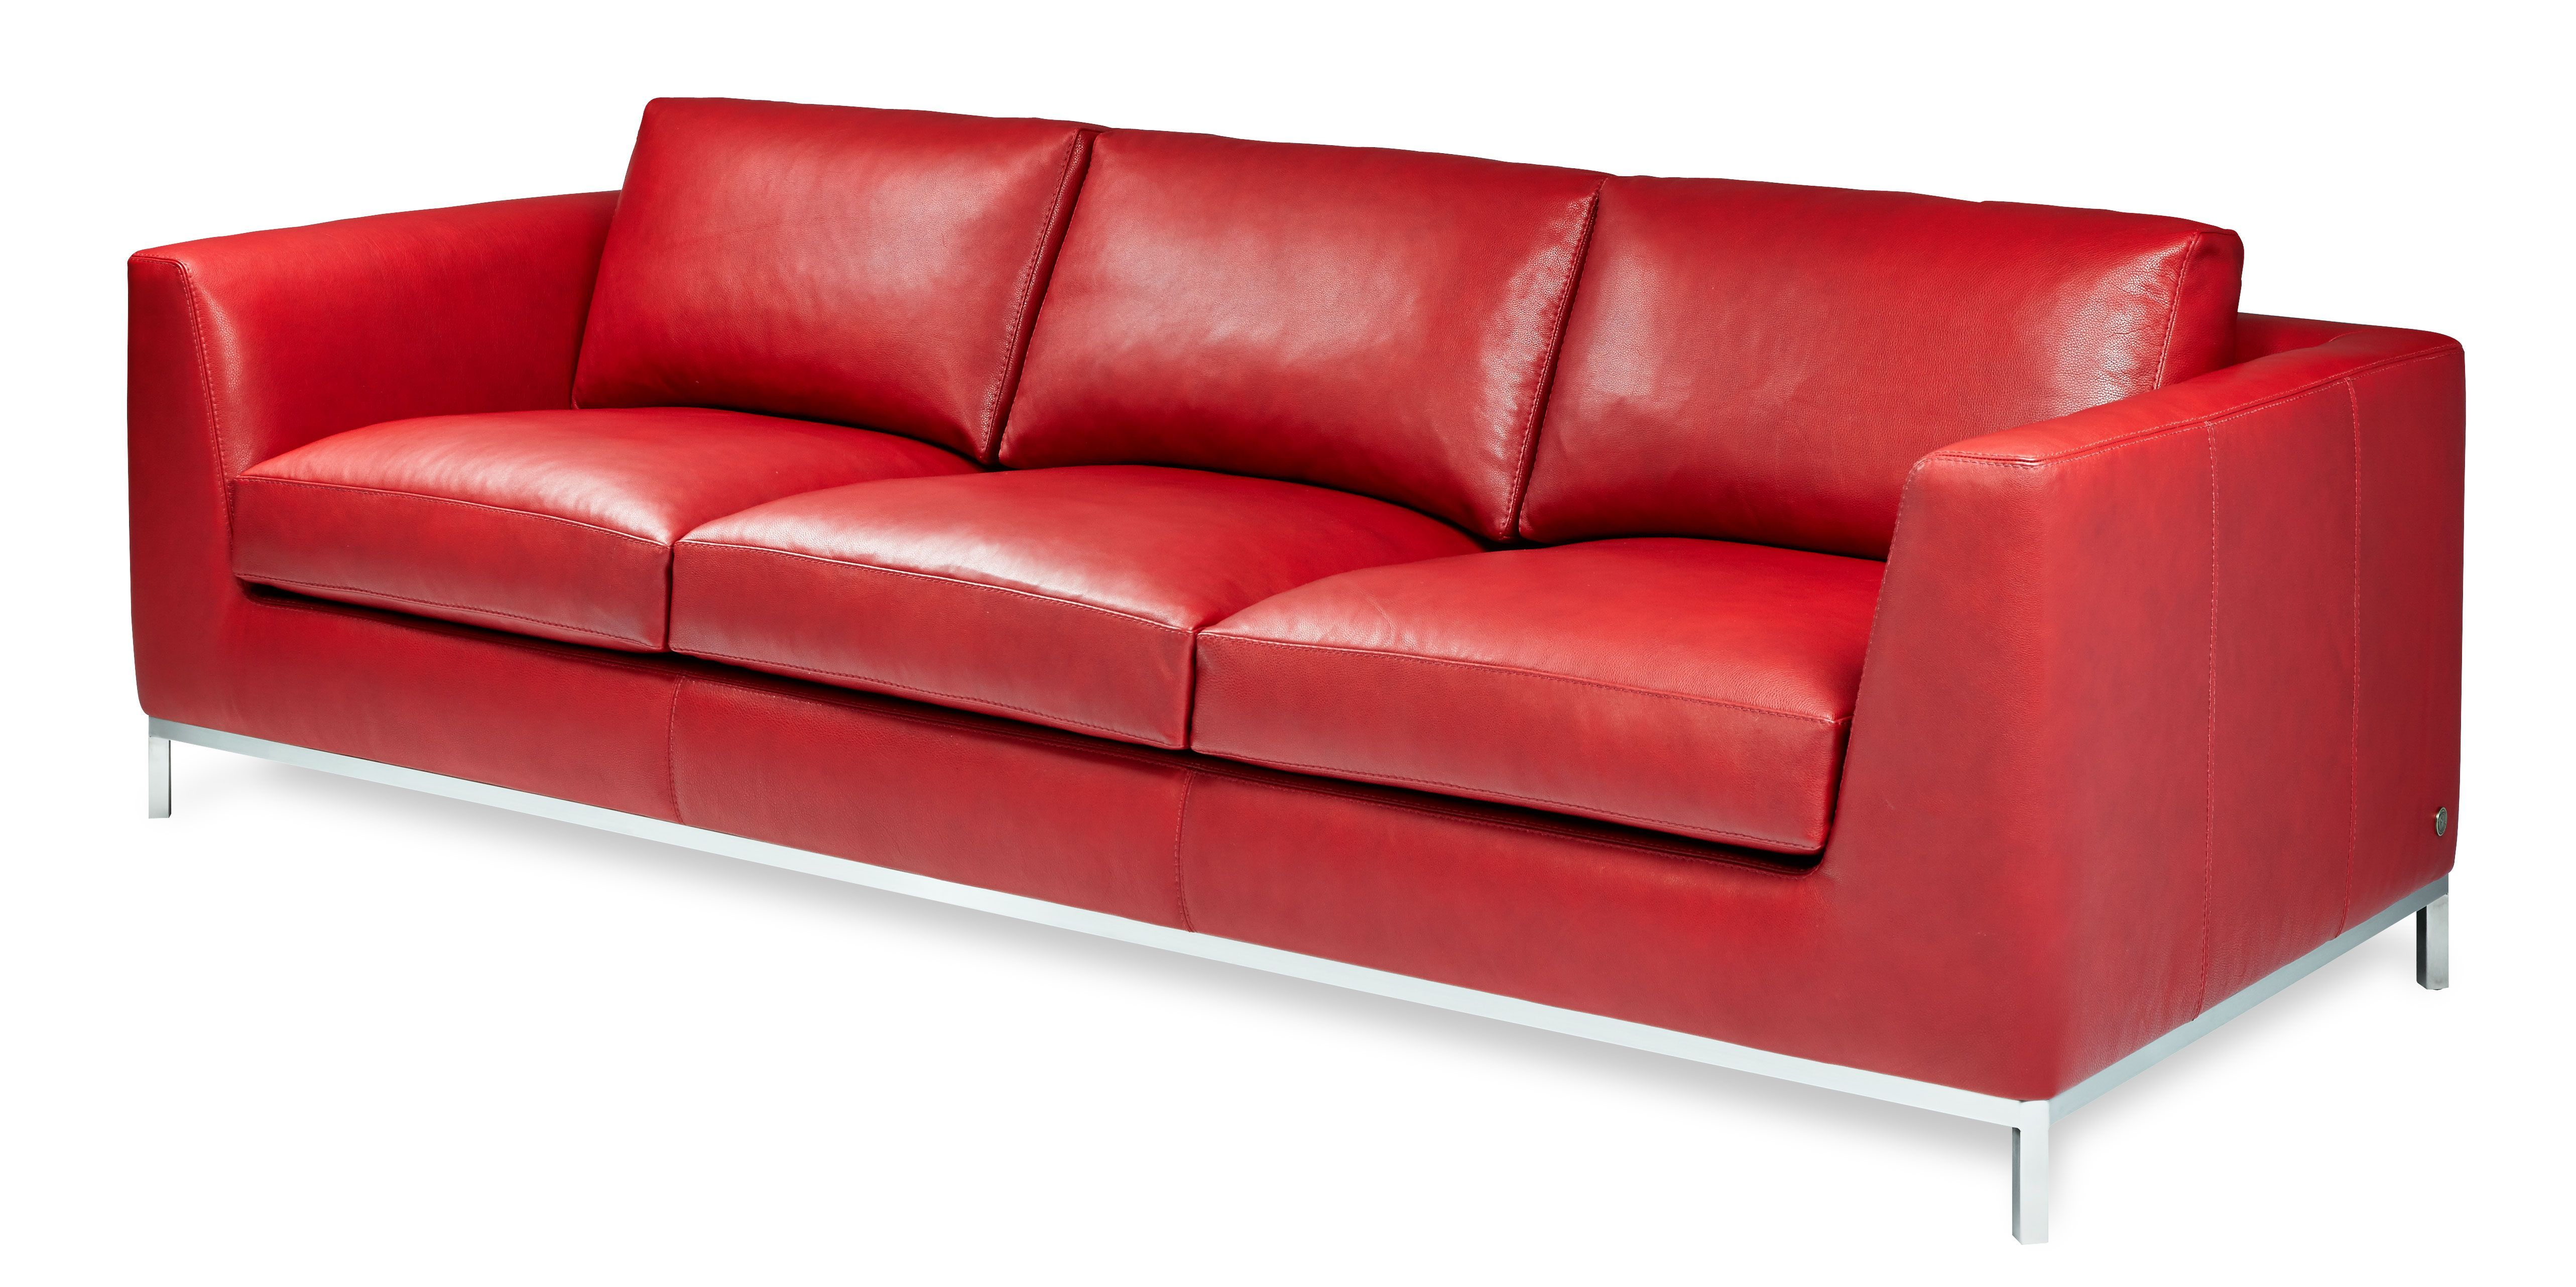 Whoa! Show-stopping red leather from American Leather ...